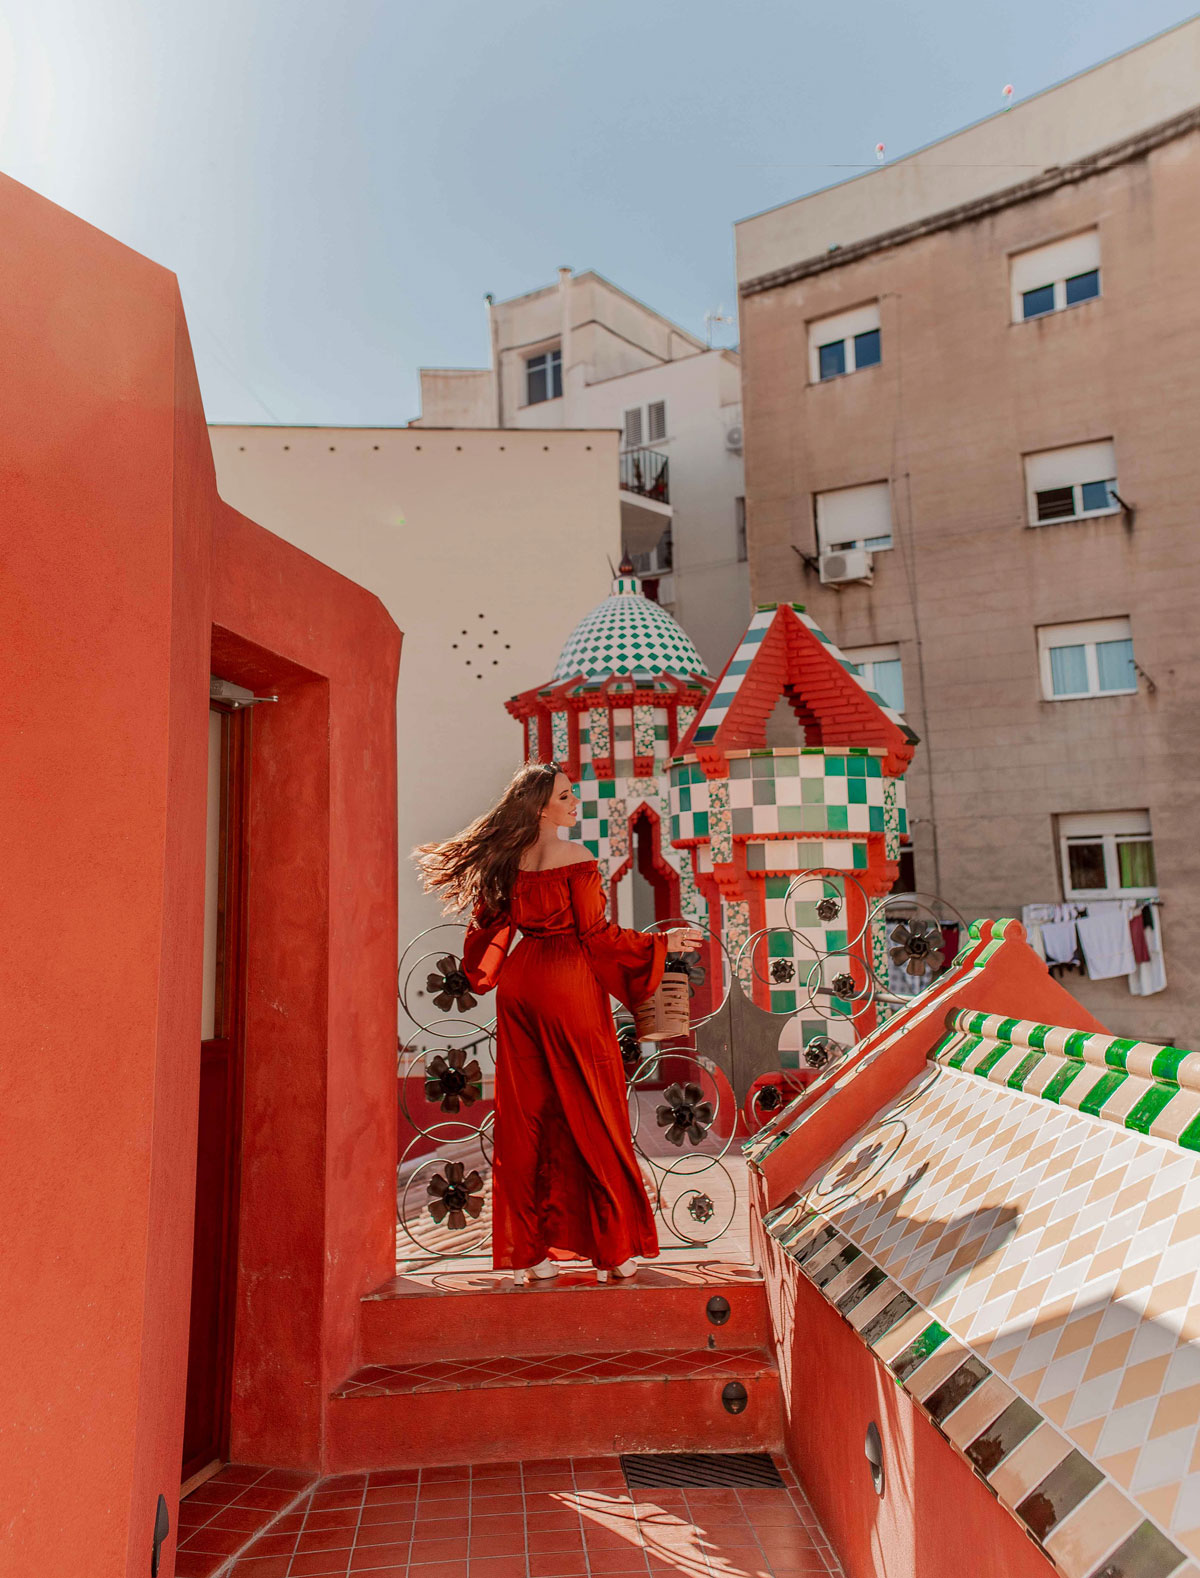 Top-things-to-do-in-Barcelona-Bucket-list--Instagram-Story-Template--kelseyinlondon-Kelsey-Heinrichs--What-to-do-in-Barcelona--Where-to-go-in-Barcelona-top-places-in-Barcelona-casa-vicens